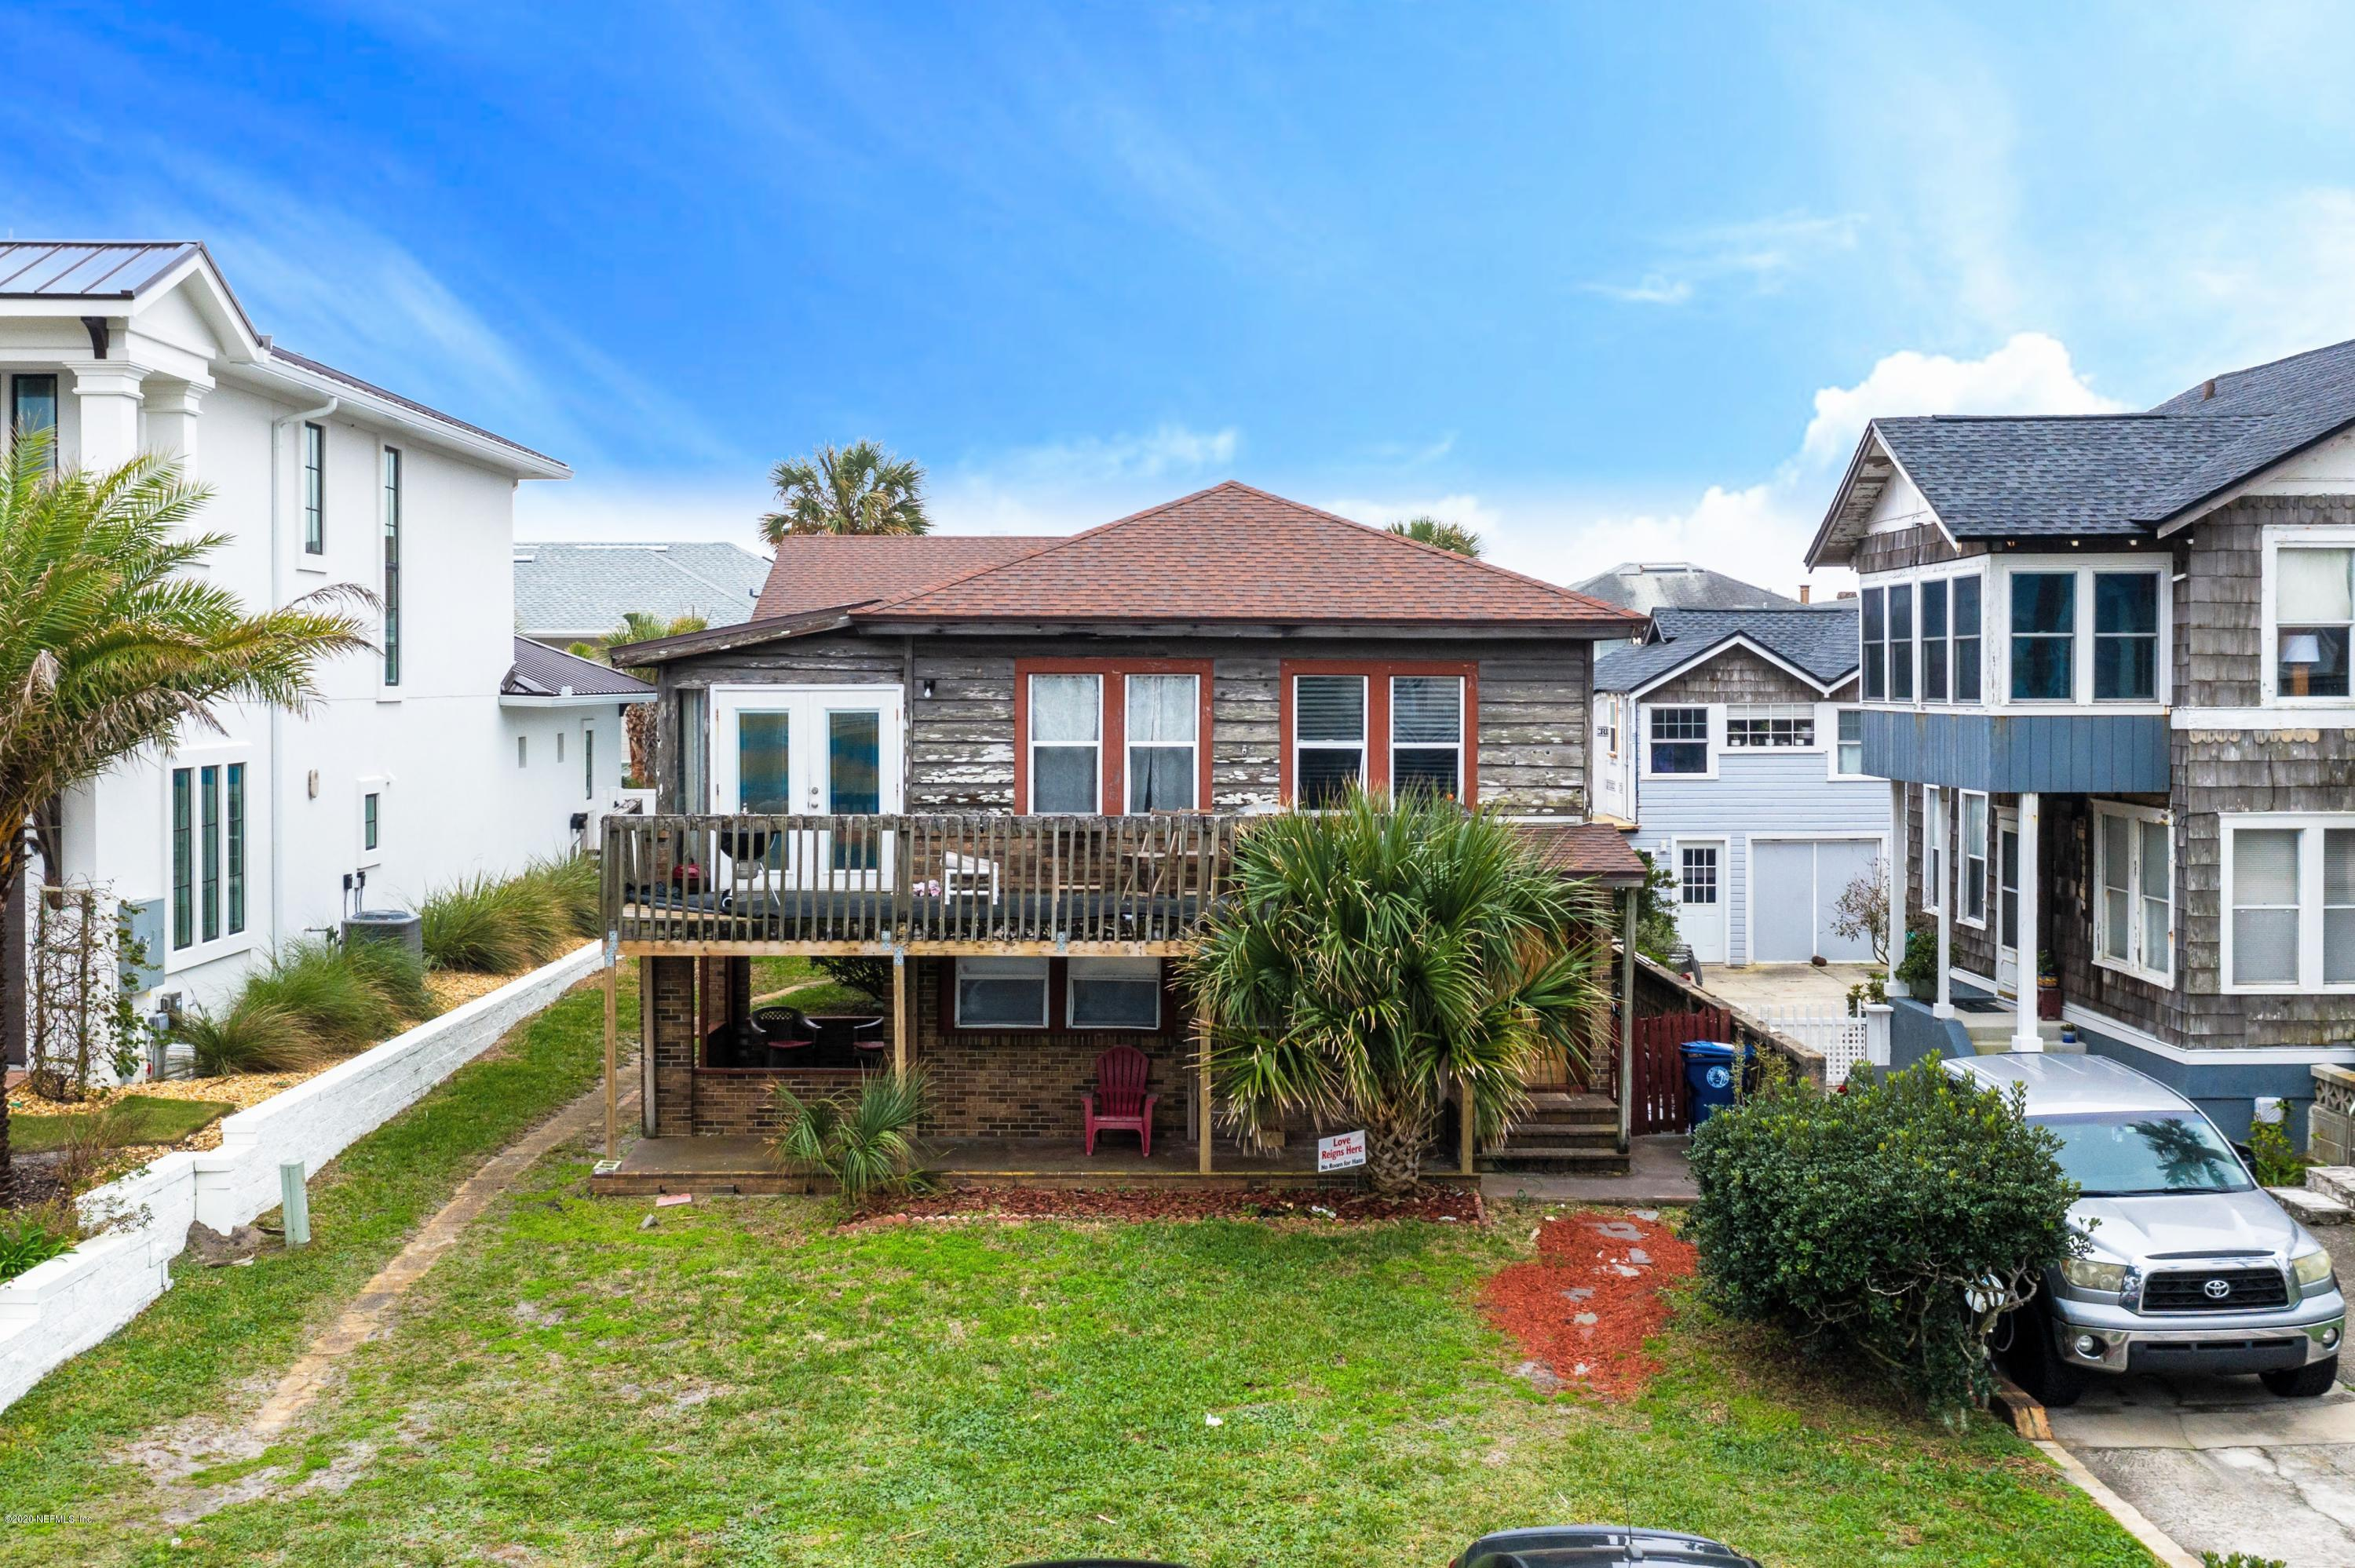 109 FLORIDA, NEPTUNE BEACH, FLORIDA 32266, 6 Bedrooms Bedrooms, ,4 BathroomsBathrooms,Investment / MultiFamily,For sale,FLORIDA,1030646